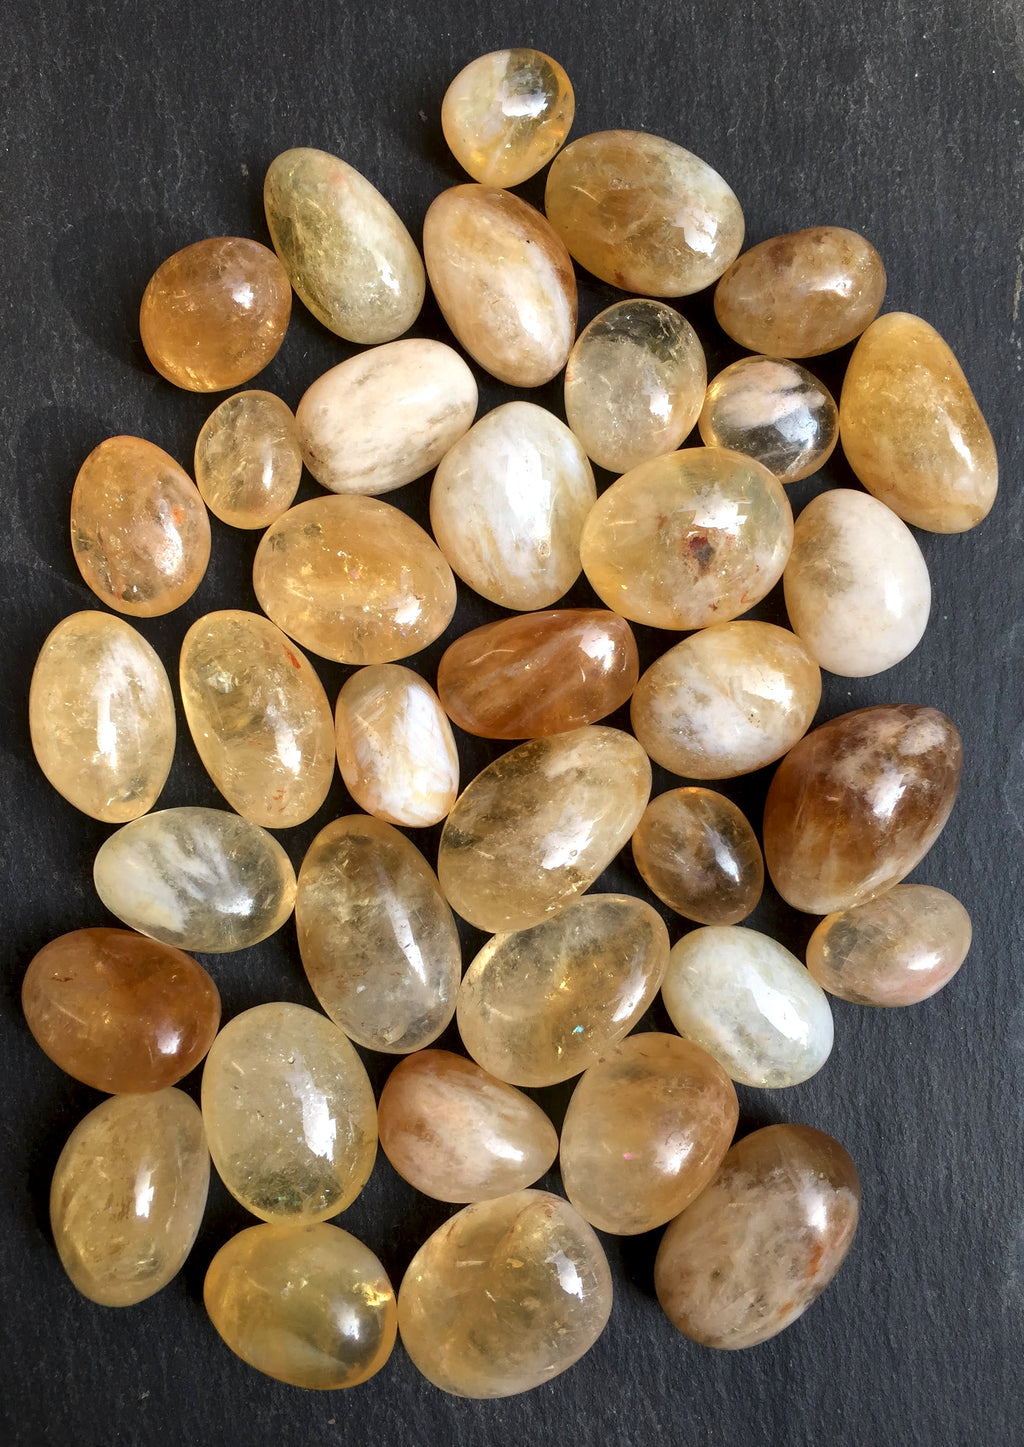 African Citrine tumbles